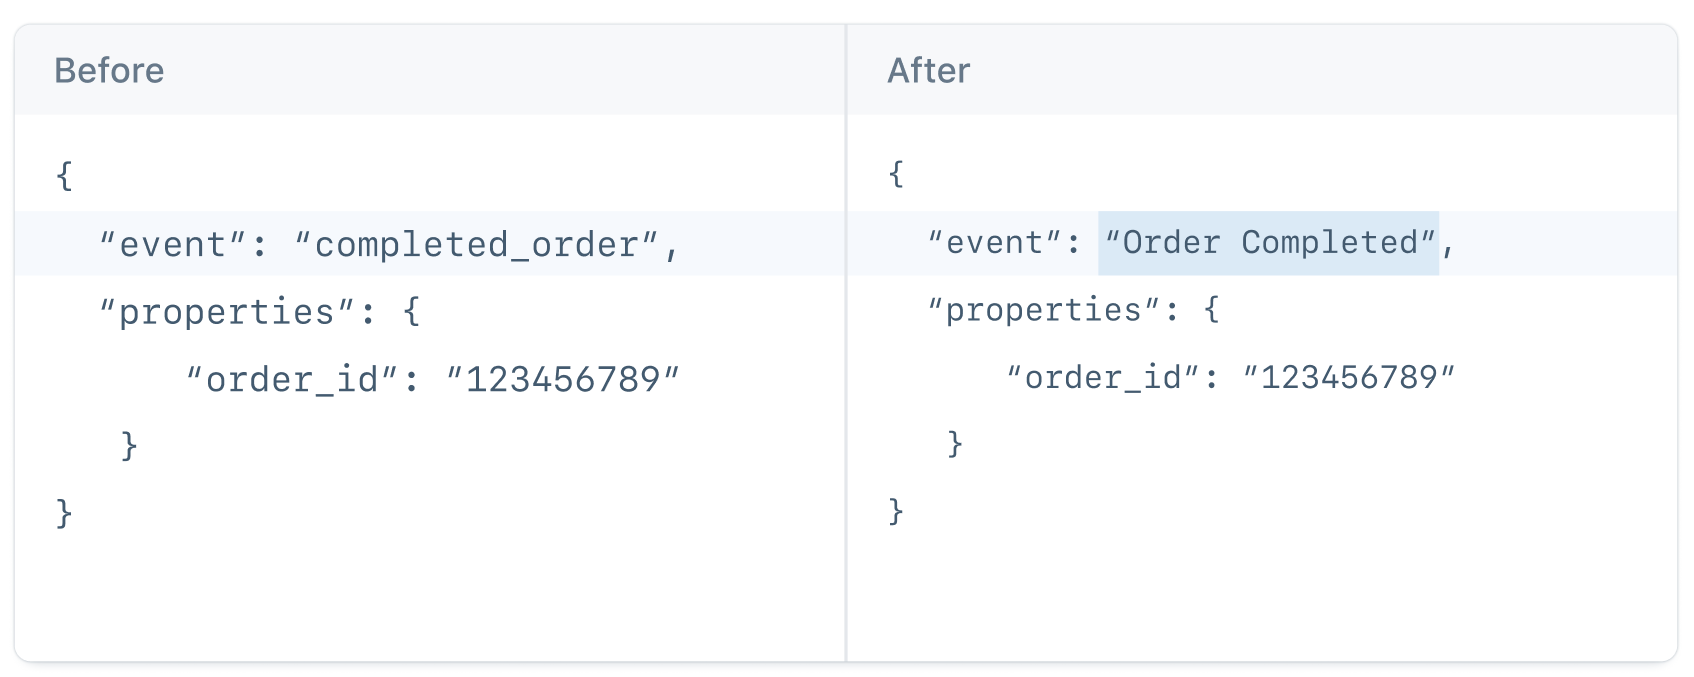 Example transformation for Order Completed event